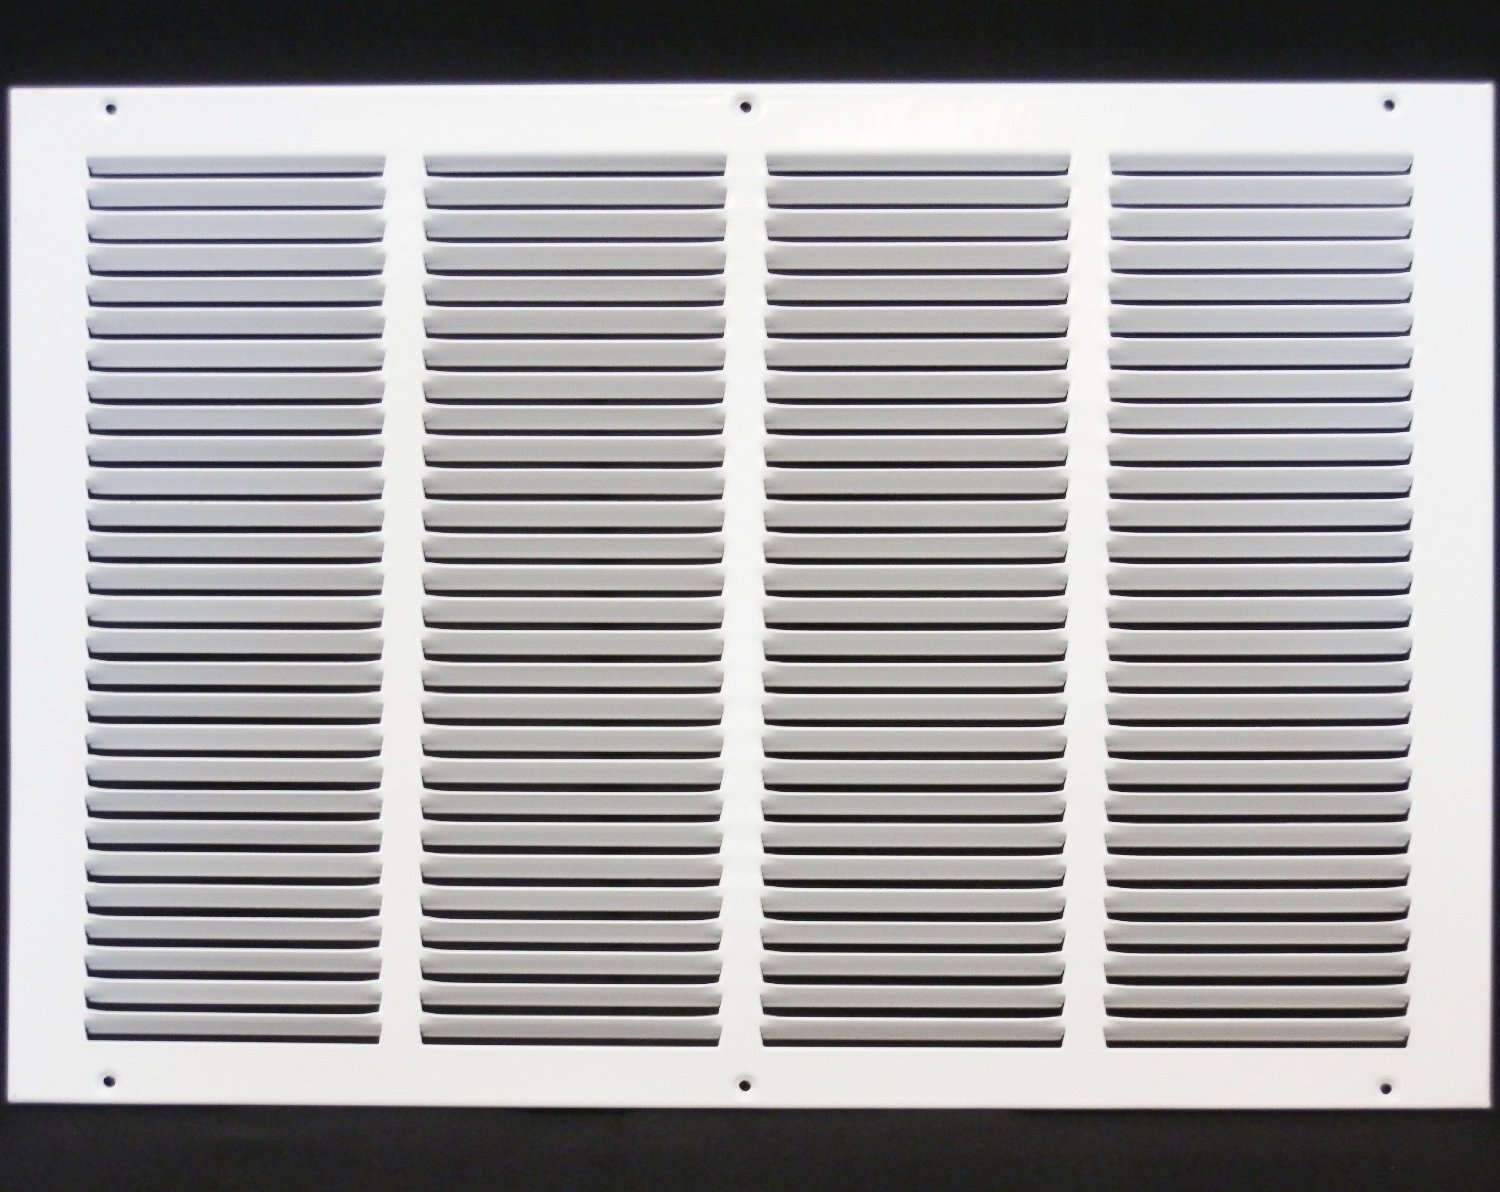 20''w X 12''h Steel Return Air Grilles - Sidewall and Cieling - HVAC DUCT COVER - White [Outer Dimensions: 21.75''w X 13.75''h]